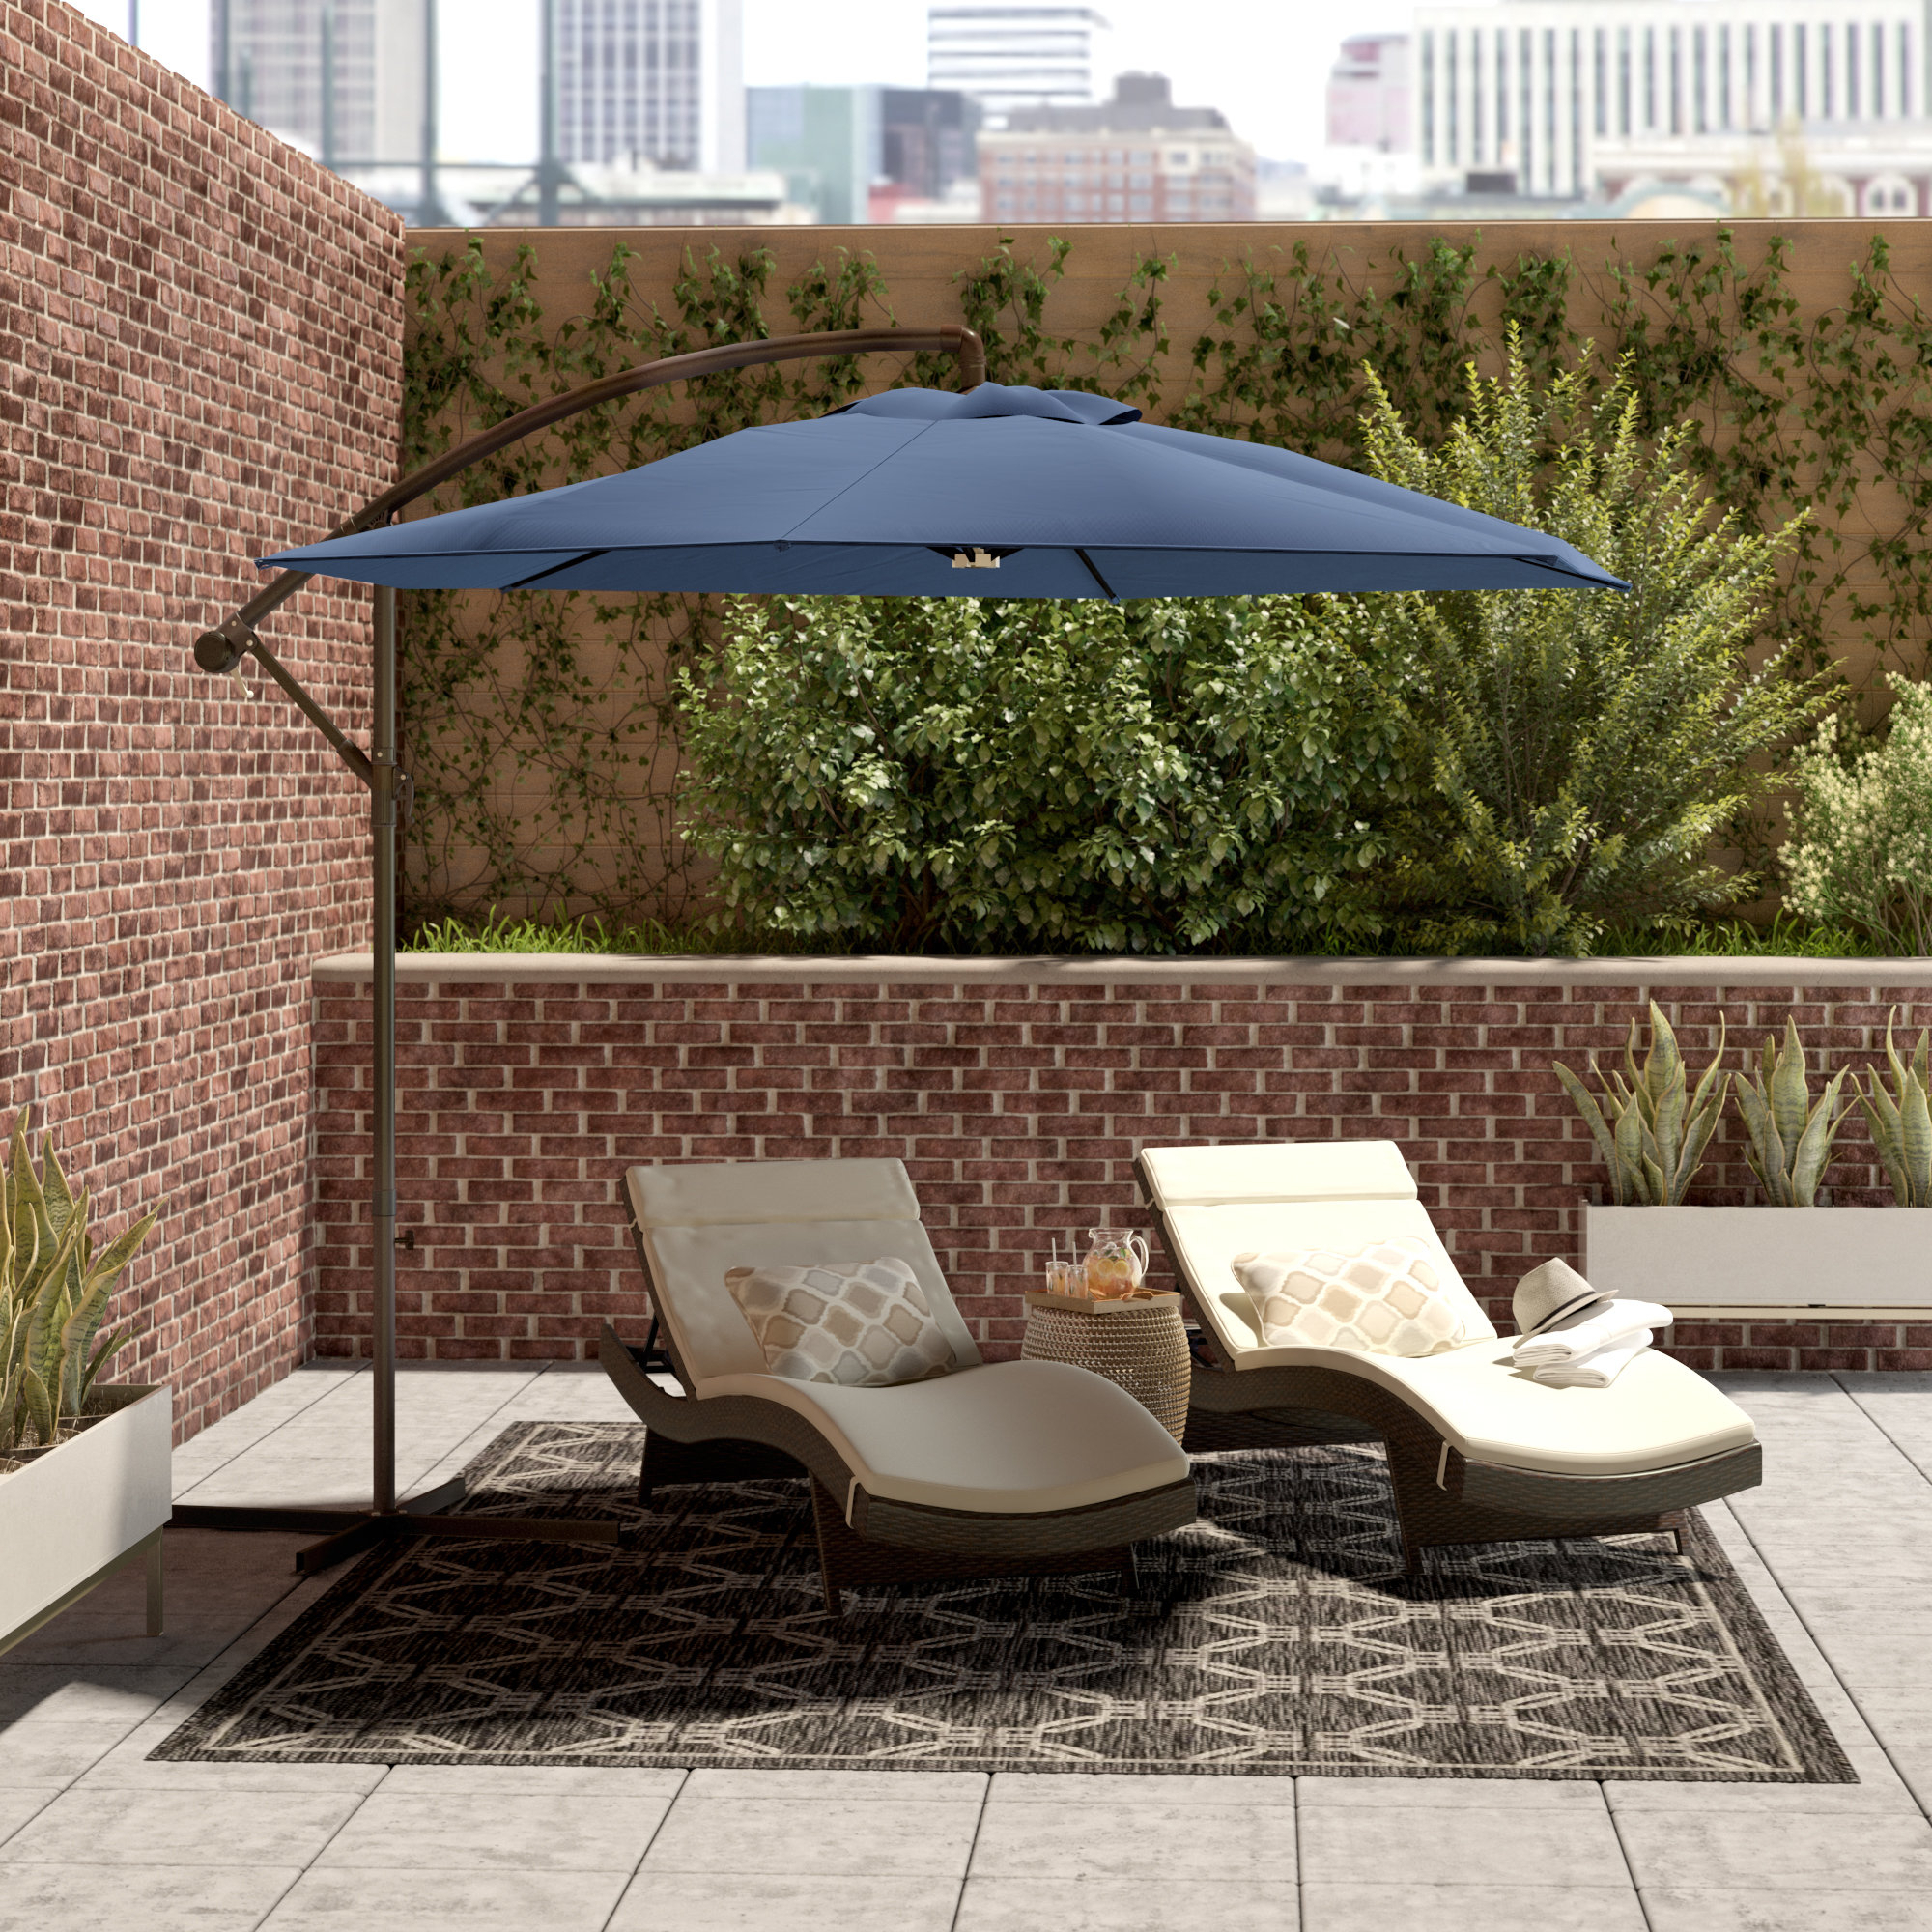 Well Liked Amaris Cantilever Umbrellas Throughout 10' Cantilever Umbrella (View 14 of 20)